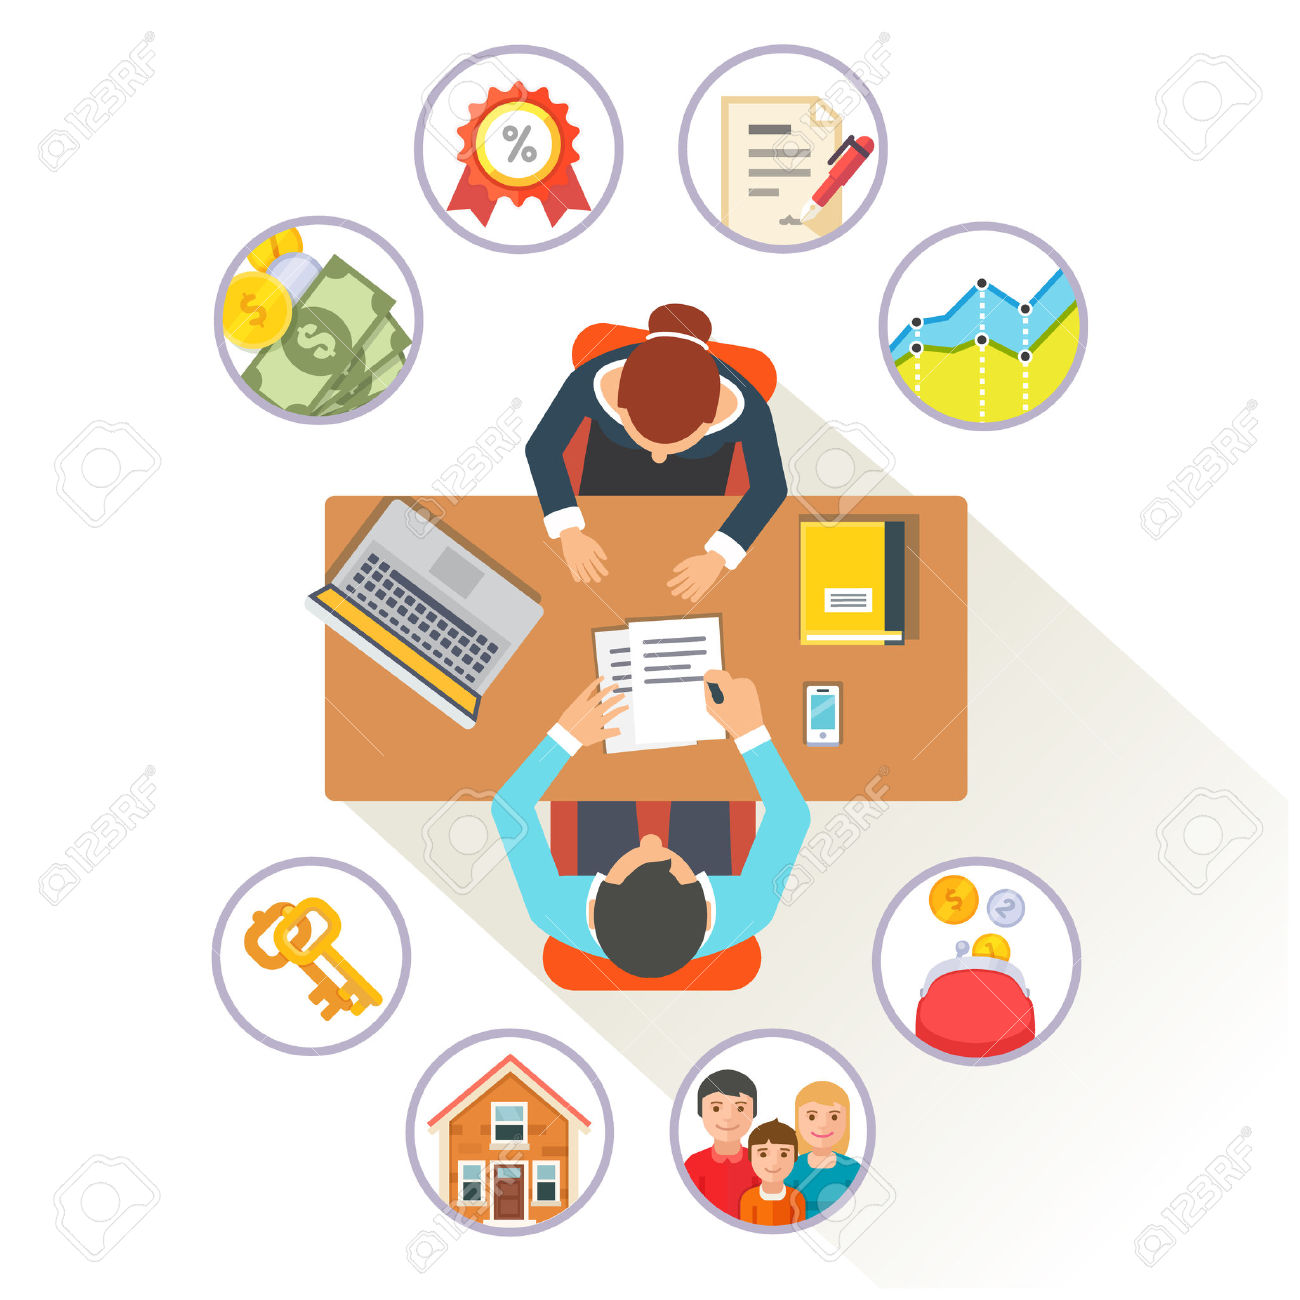 Bank clerk clipart jpg royalty free Bank Credit Stock Vector Illustration And Royalty Free Bank Credit ... jpg royalty free